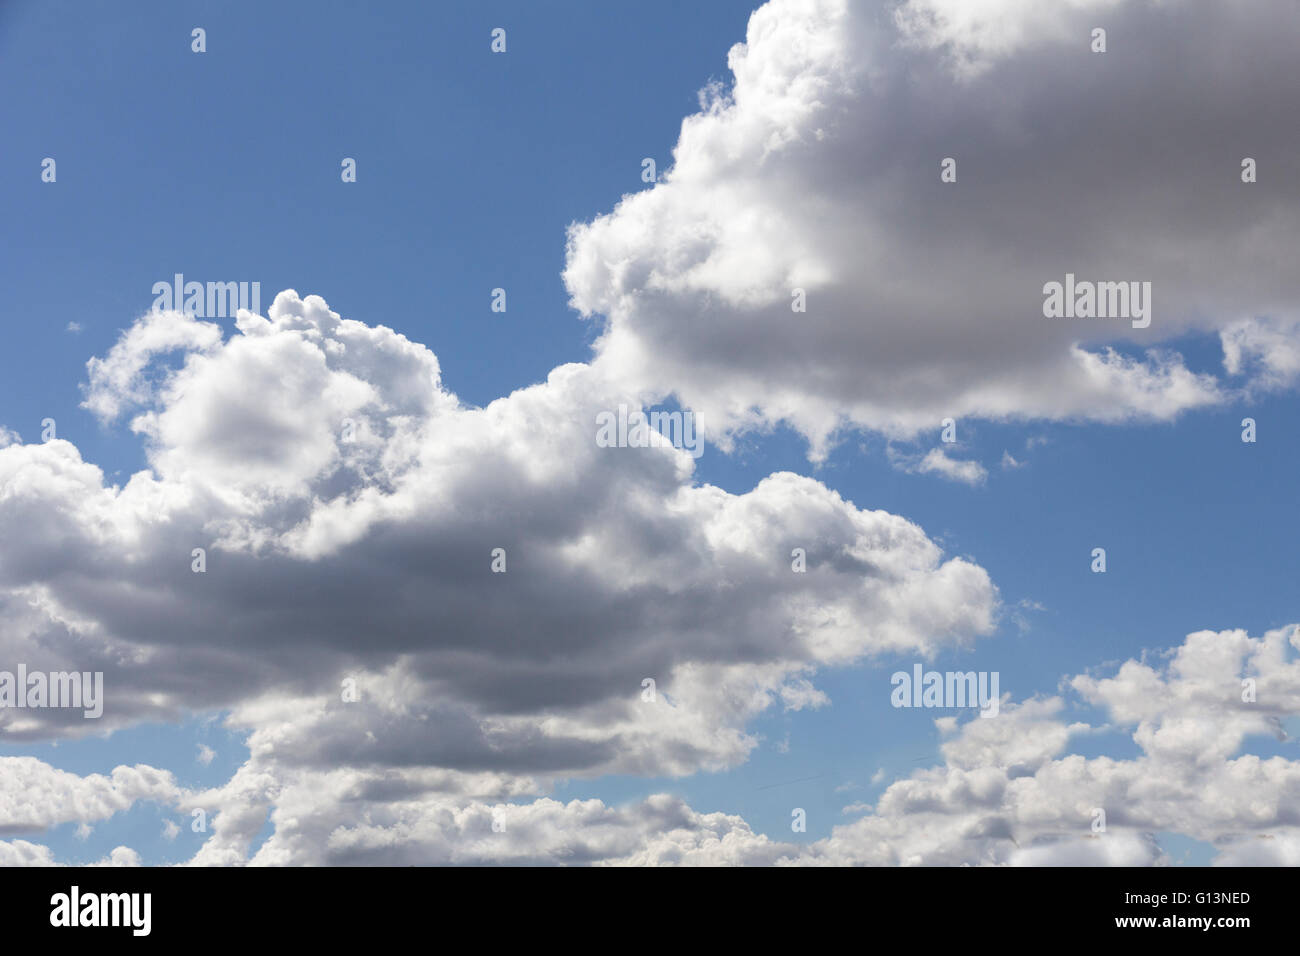 White fluffy clouds against a bright blue sky - Stock Image